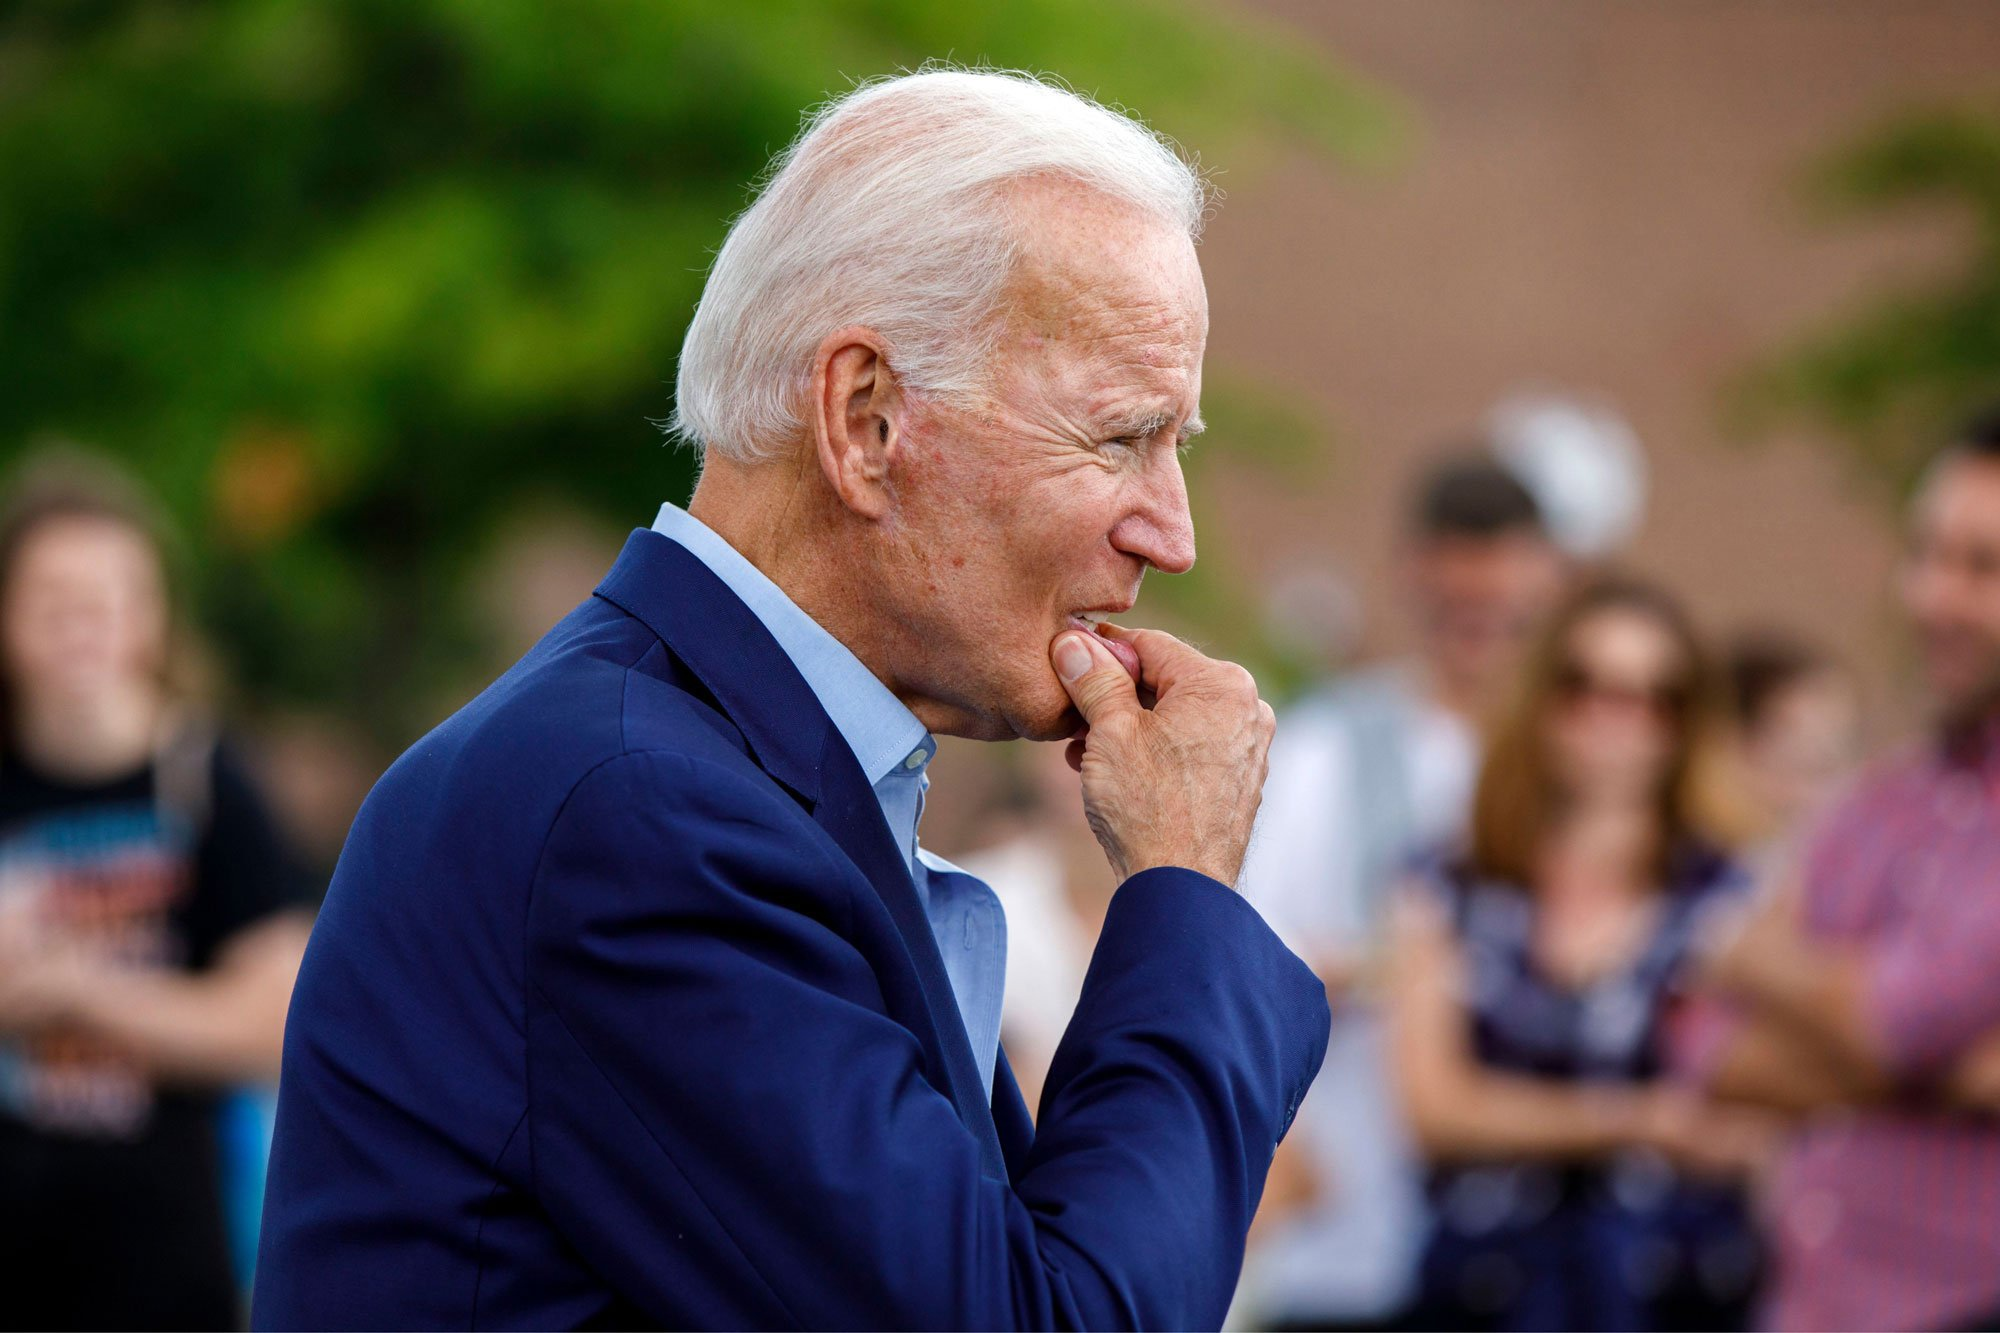 WSJ: Biden orders withdrawal of US forces from Persian Gulf region